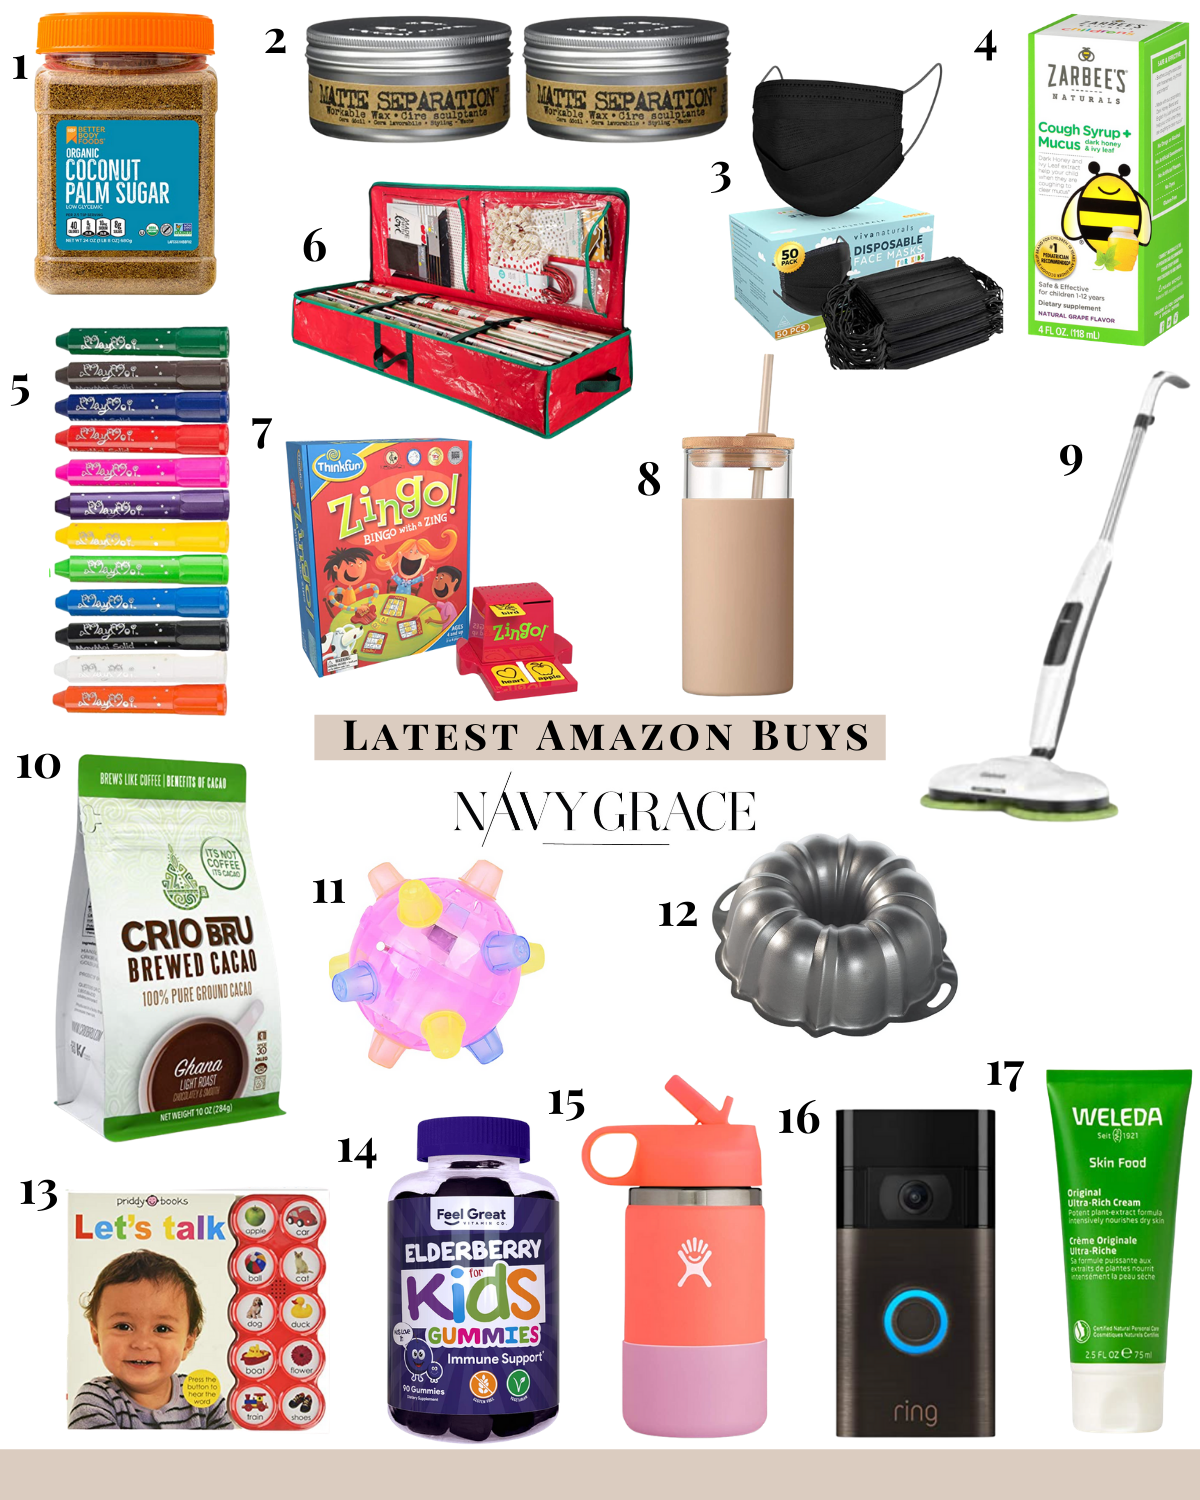 latest amazon buys |Amazon Buys by popular San Diego life and style blog, Navy Grace: image of coconut palm sugar, black face masks, Zarbees, re-useable tumbler, Crio Bru, light up ball, bundt cake pan, Lets Talk book, Elderberry Kids gummies, Hydro Flask bottle, Ring web cam, Weleda skin food, Matte Separation, Electronic mop.